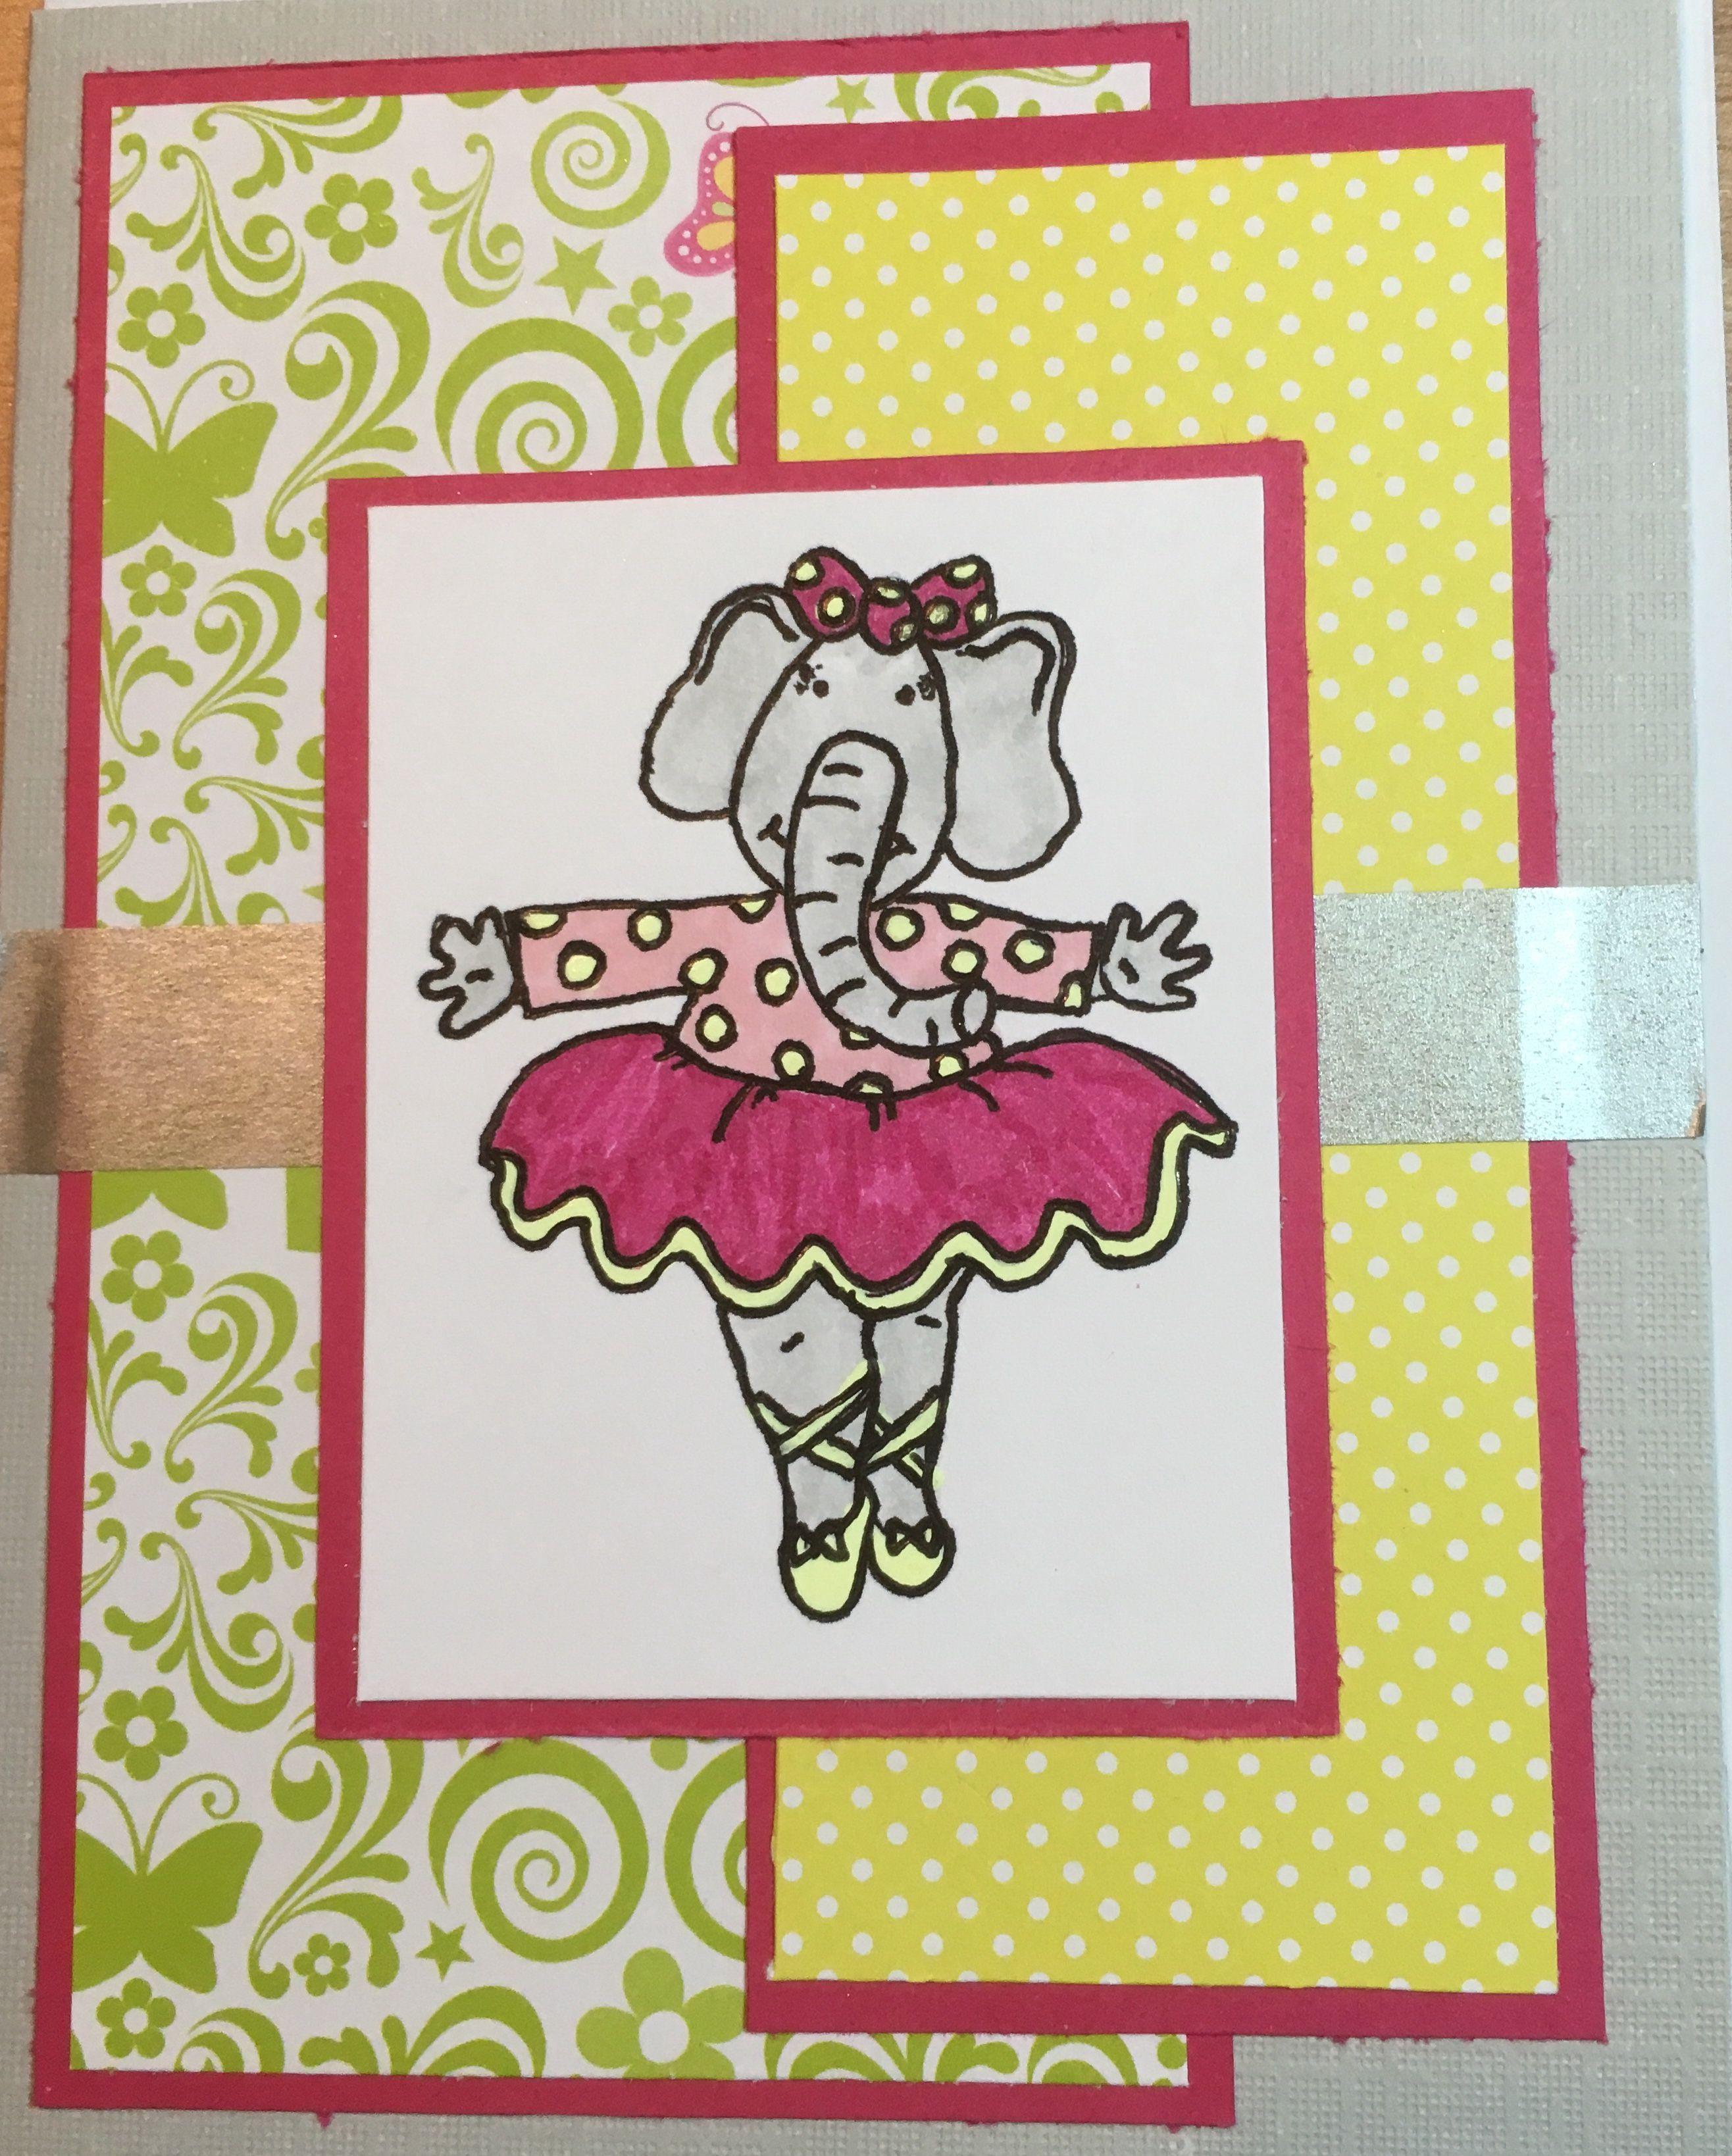 Card Size 4 1 4 X 5 1 2 Back Frame 5 1 8x 2 7 8 Pattern 4 15 15 X 2 11 16 Middle 2 X 4 11 16 Pattern 1 13 16 X 4 7 16 Add Ribbon Cards Card Sizes Pattern